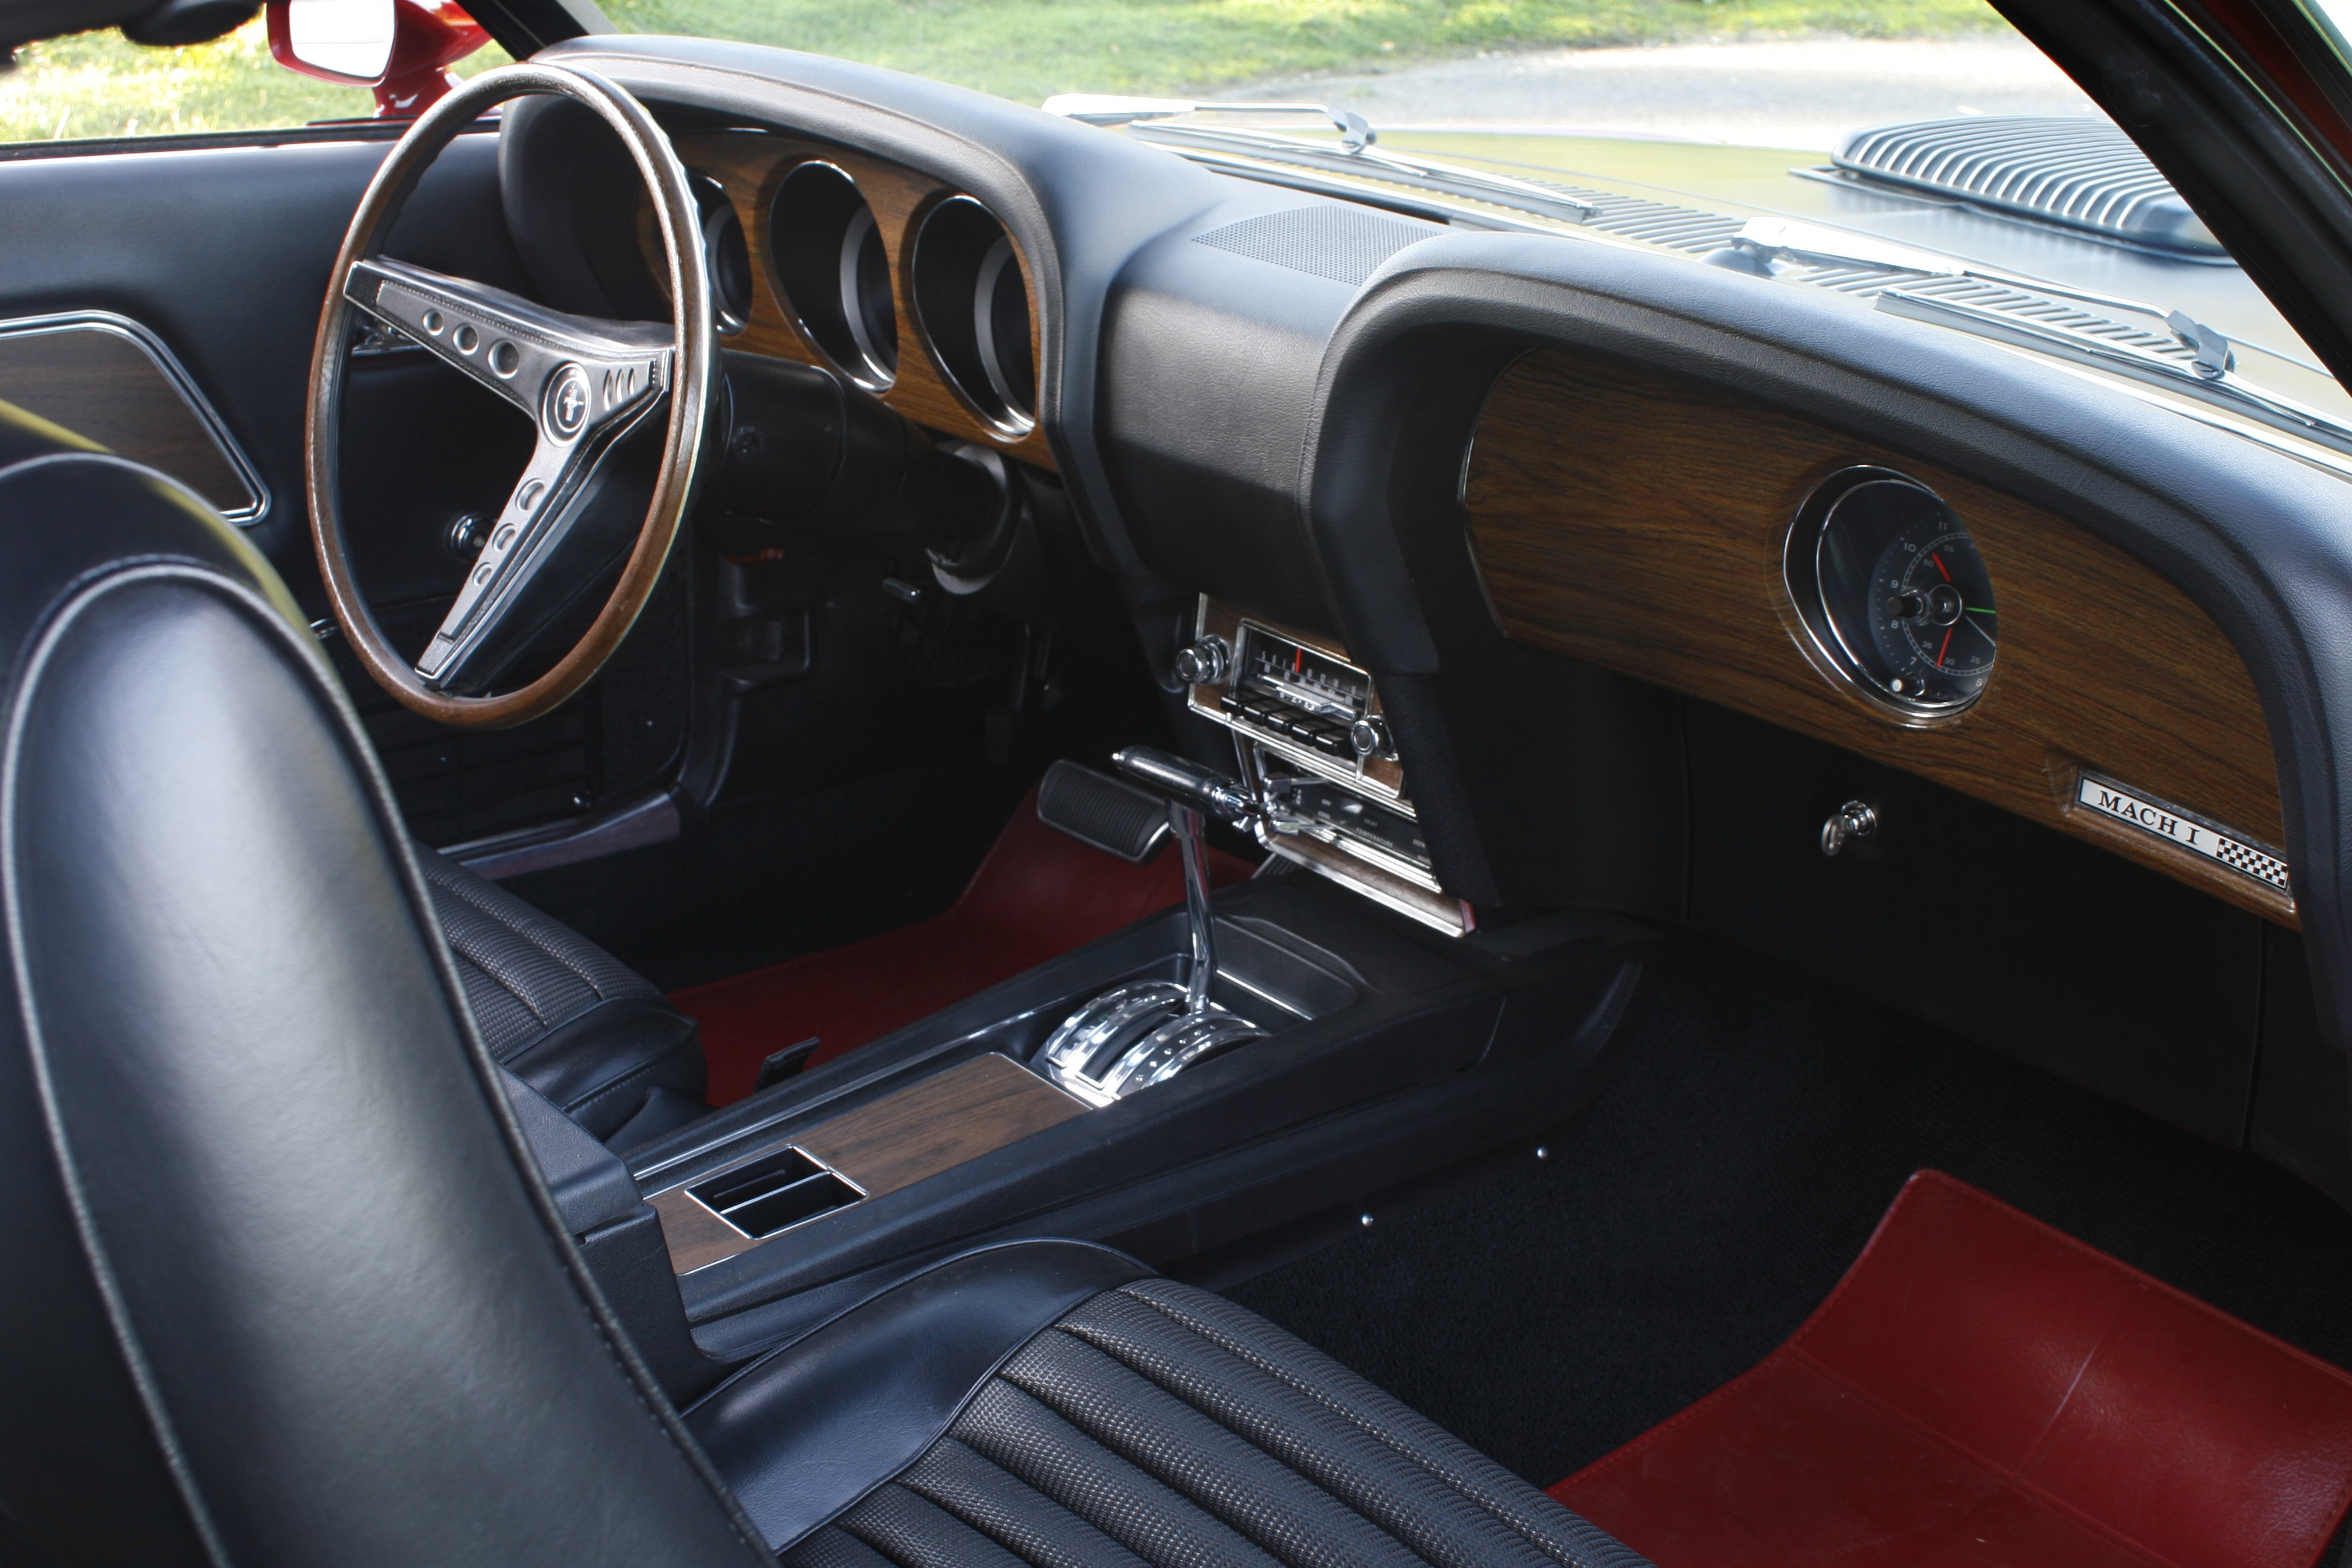 Diagram Besides Mustang Wiring Diagram On 1970 Ford Mustang Mach 1